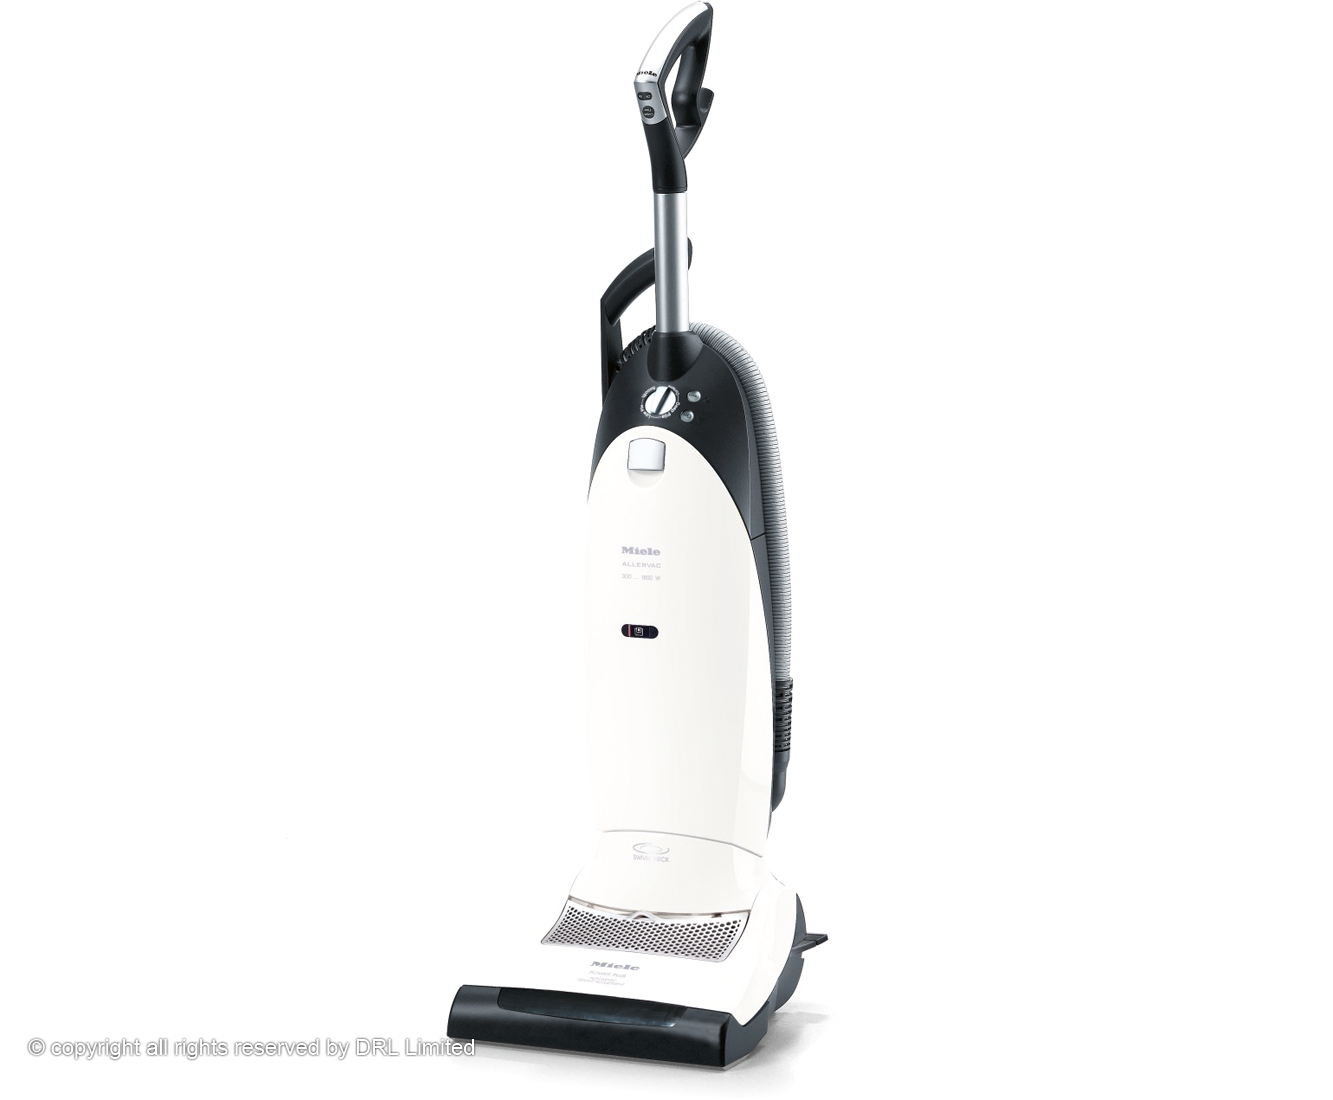 Miele Allervac S7280 Bagged Upright Vacuum Cleaner